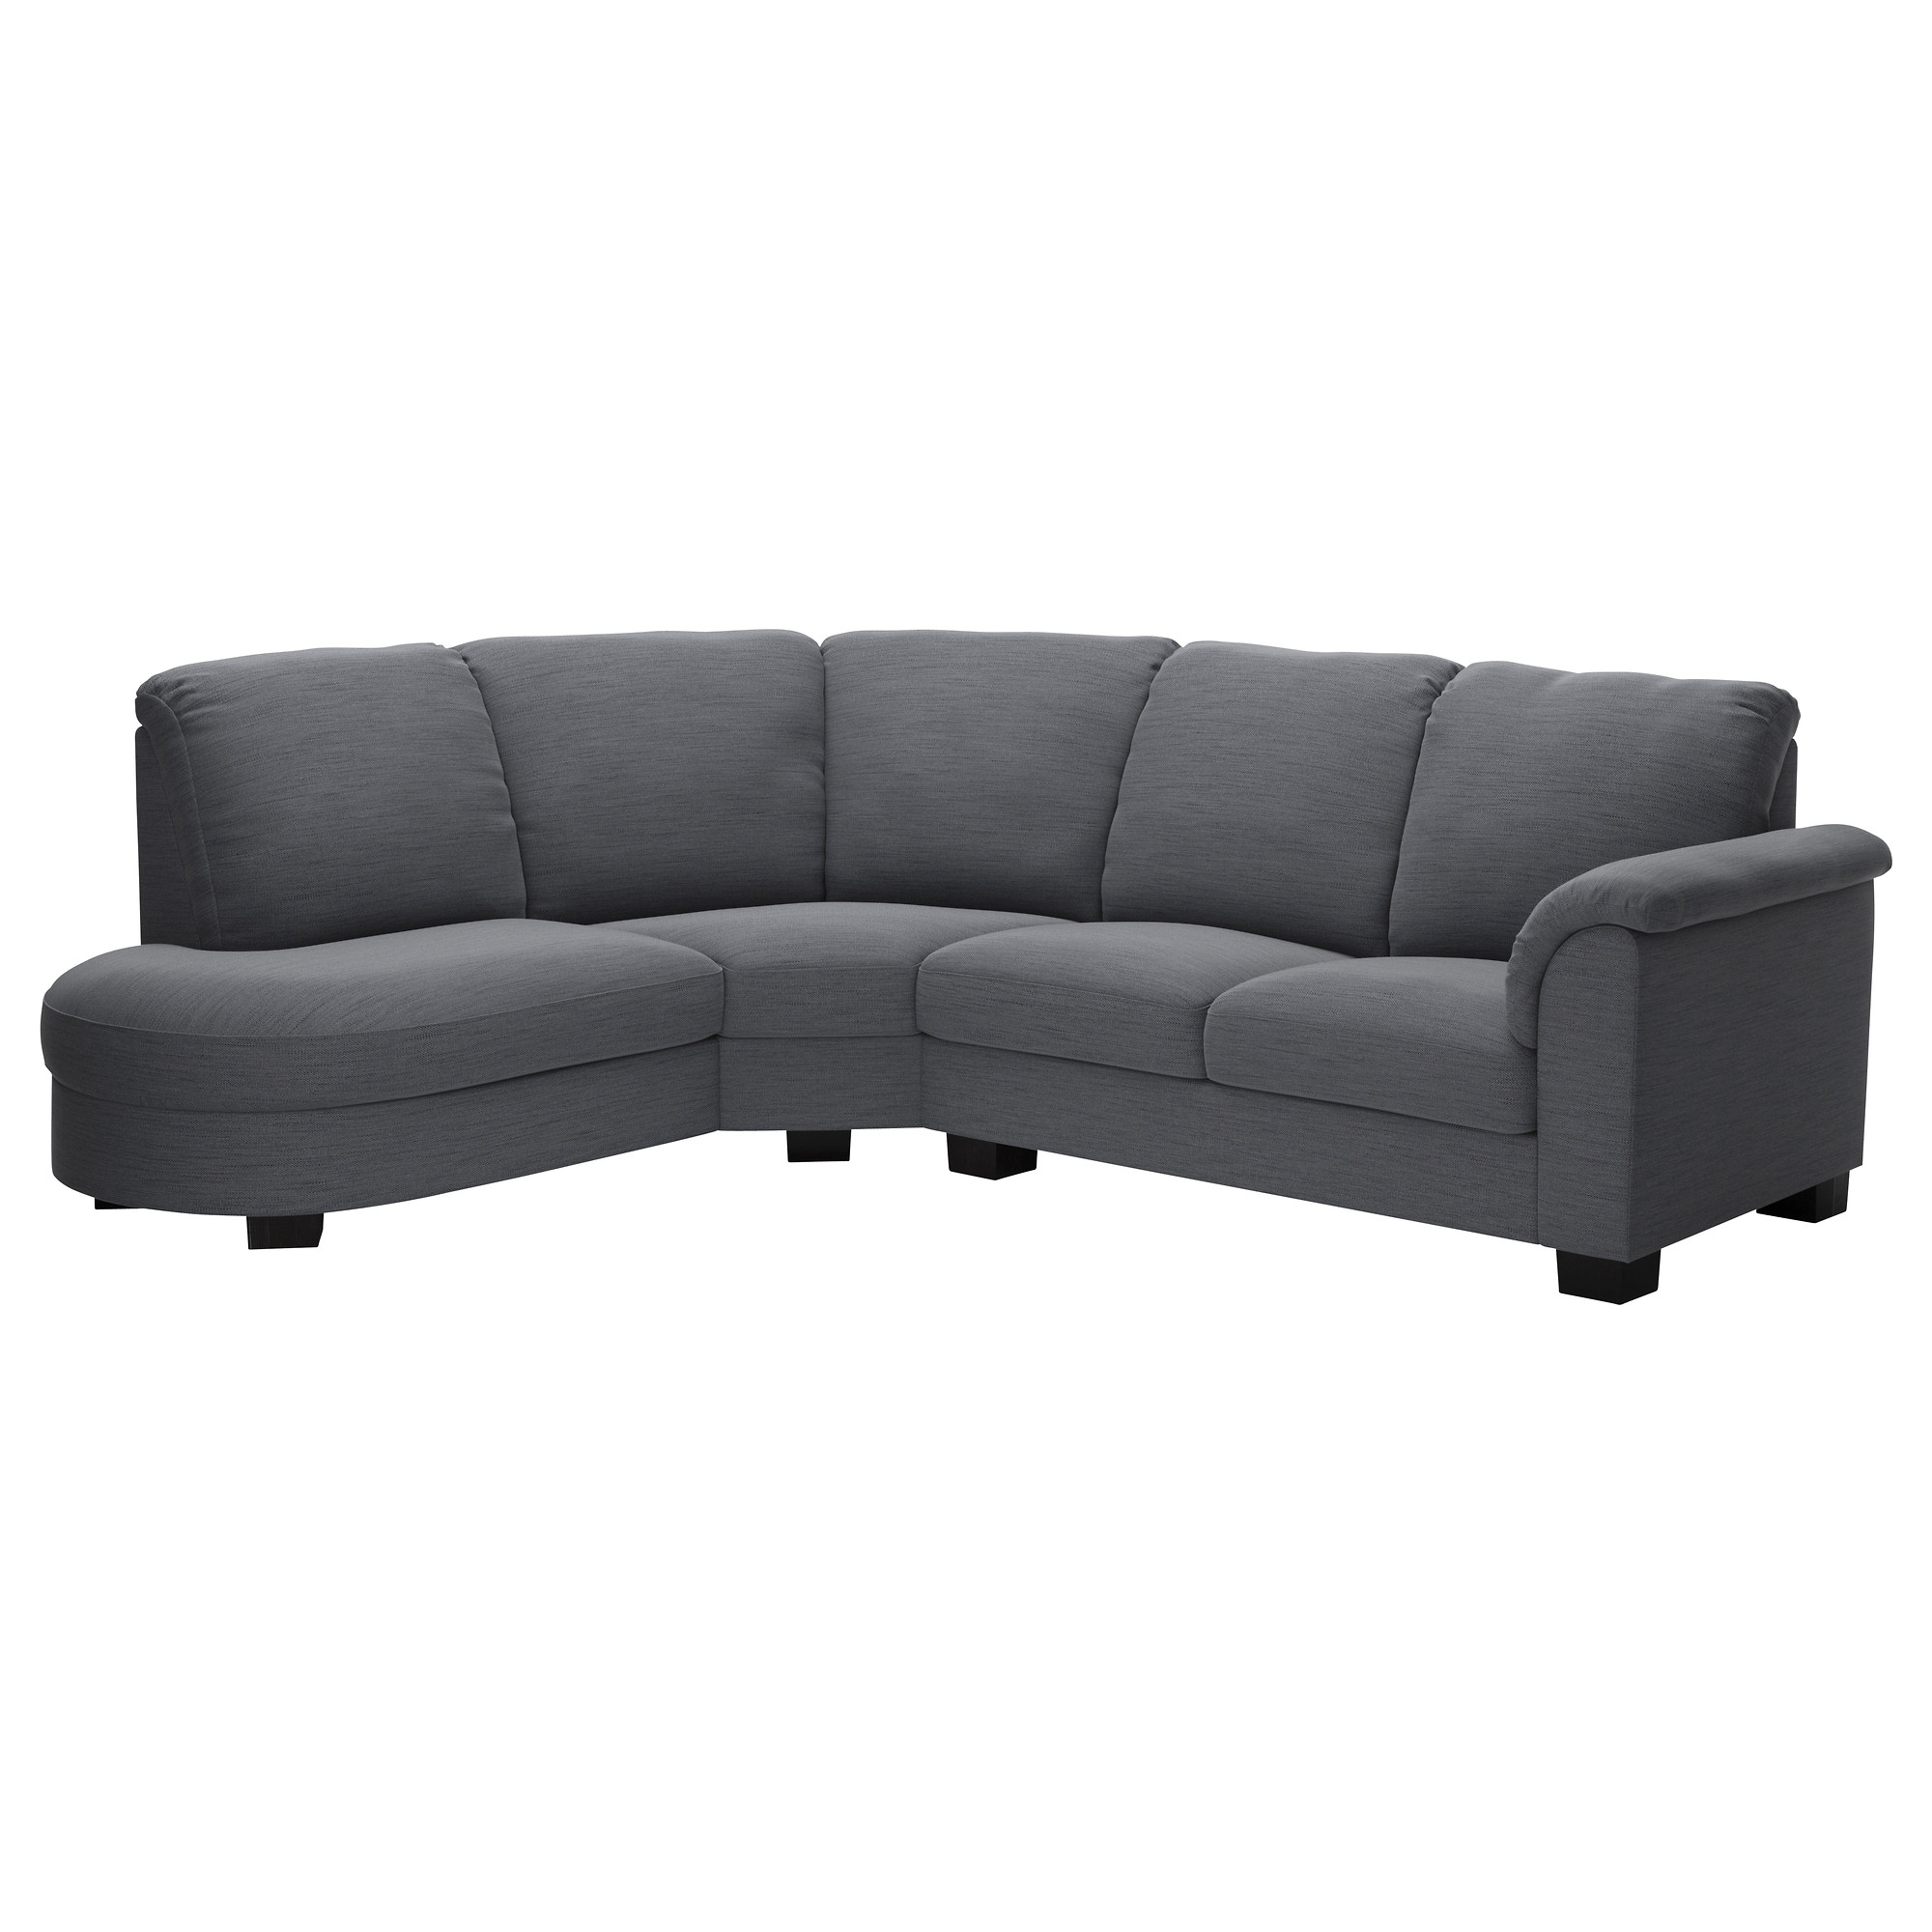 TIDAFORS Sectional, 3 Seat   Dansbo Medium Brown   IKEA